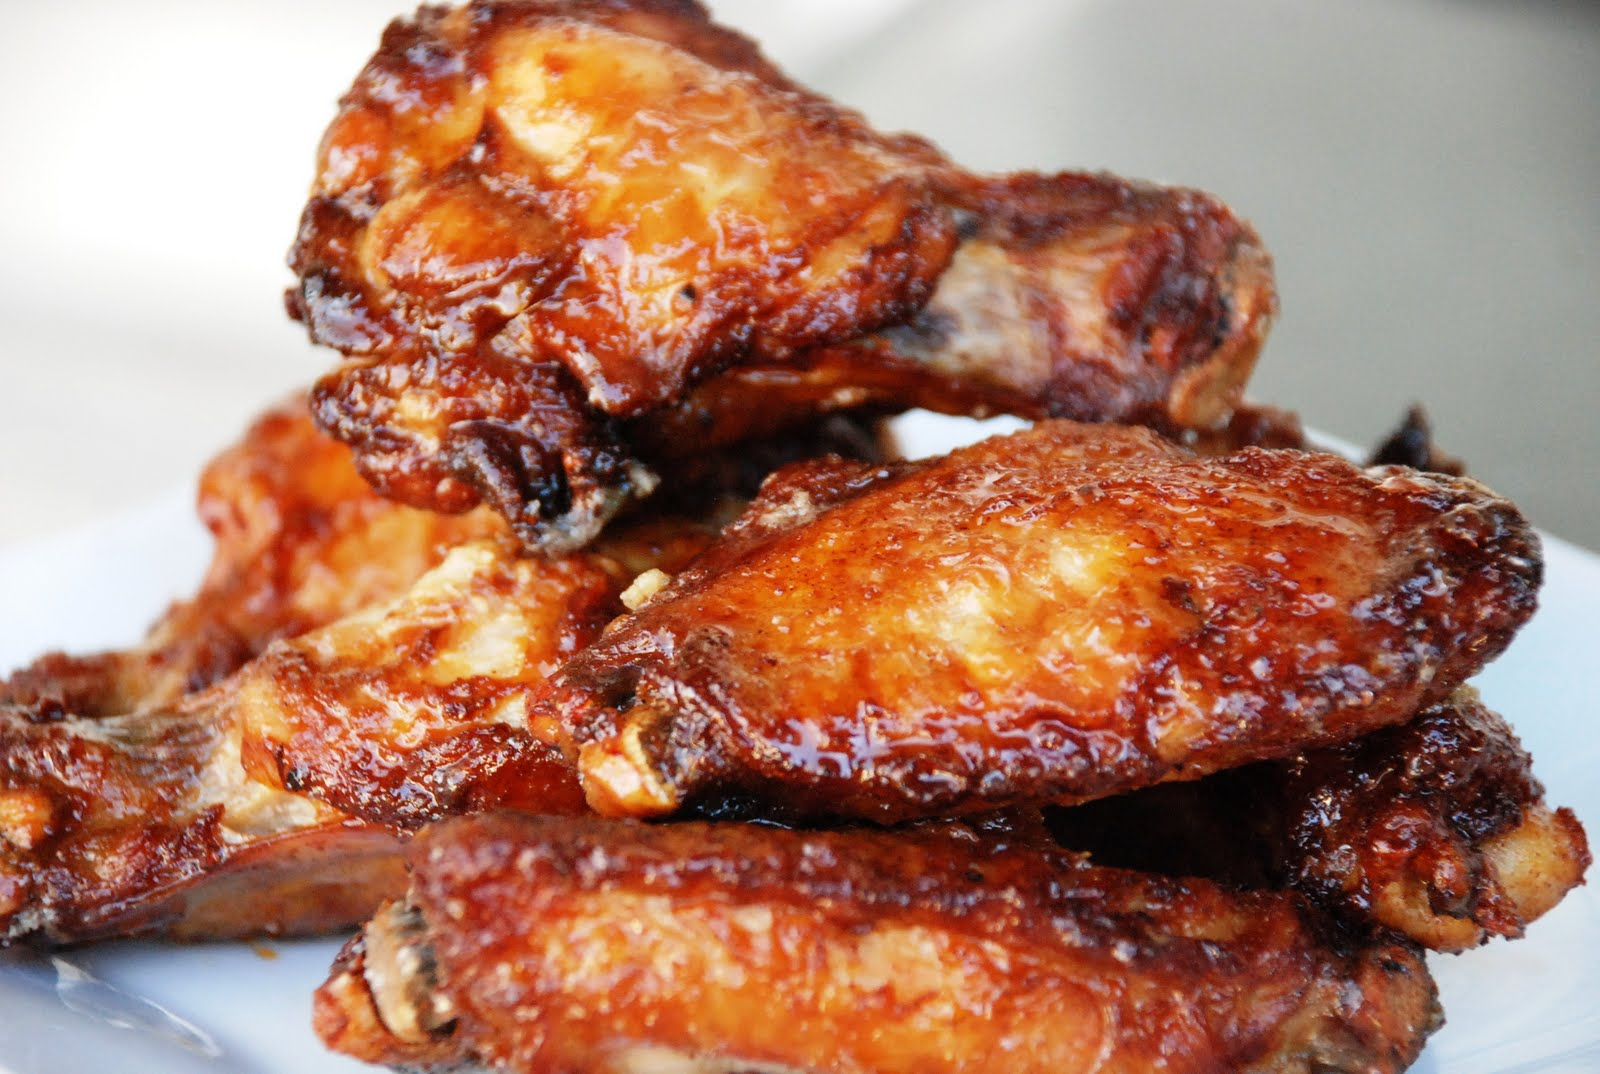 ... chicken wings here we go again now you know i don t like chicken wings